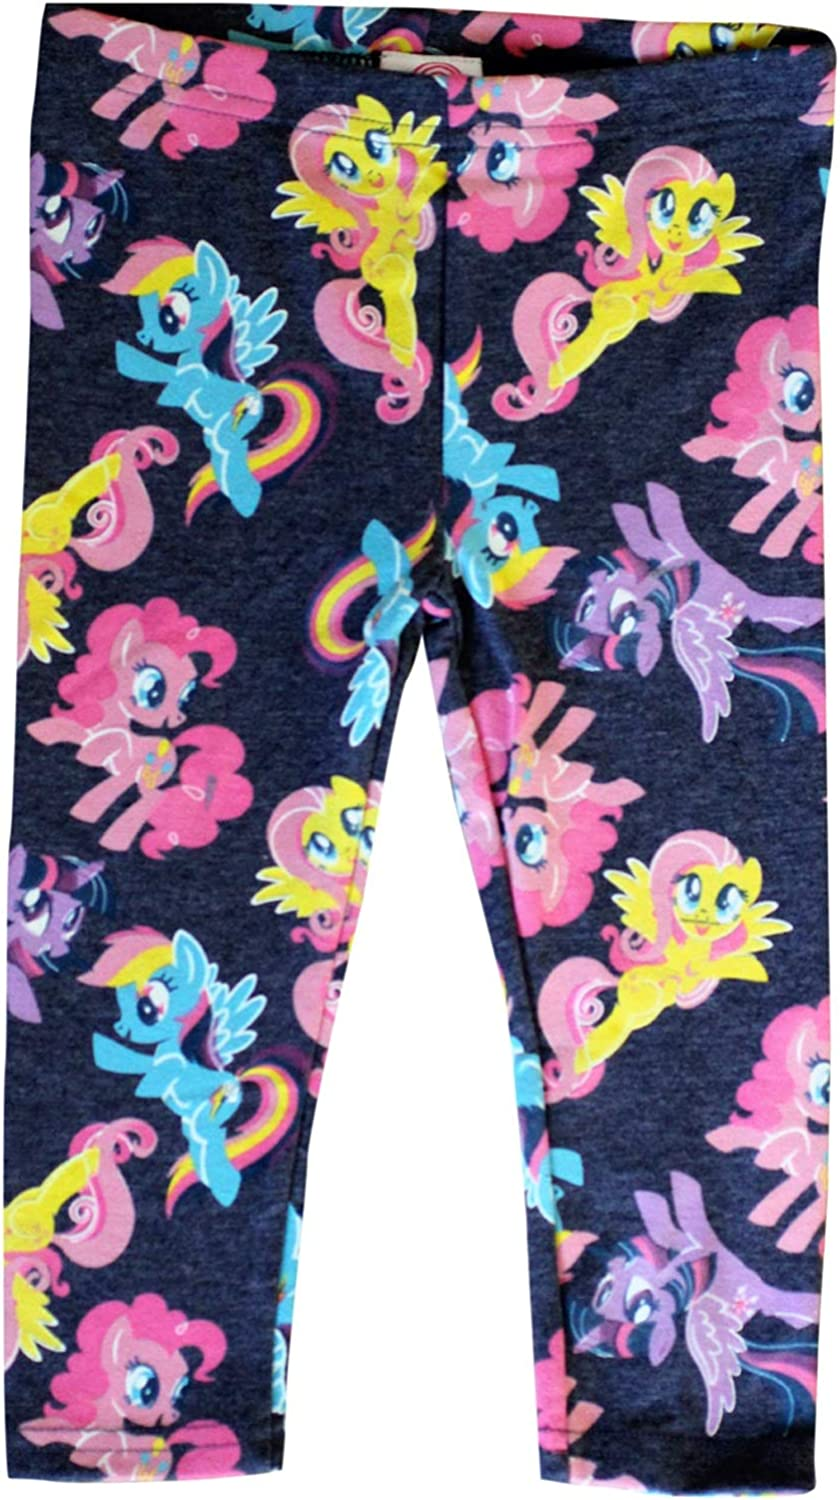 3//4 Years My Little Pony Licensed Stretchable Leggings for Girls Kids Children Grey//Pink//Yellow//Lilac